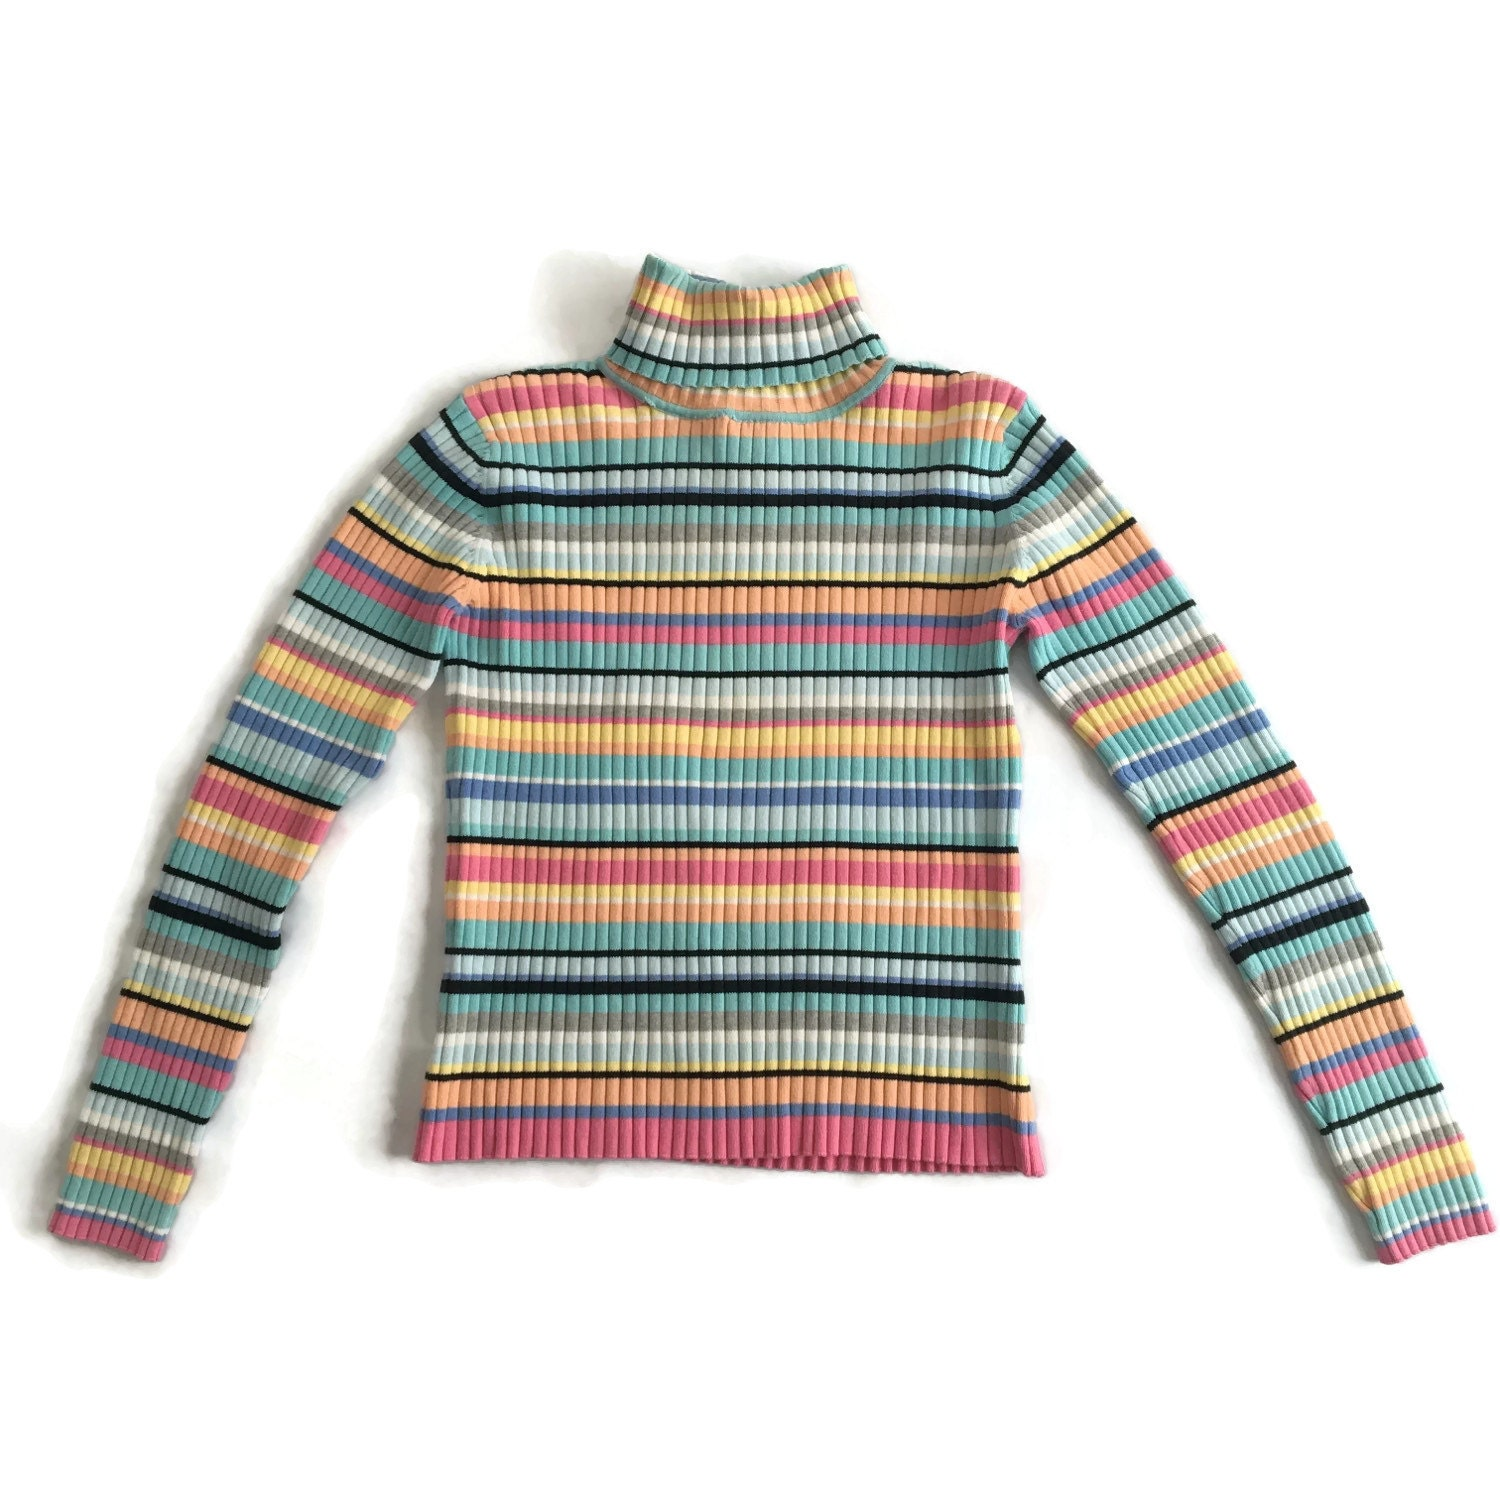 90s Grunge Striped Ribbed Turtleneck Sweater